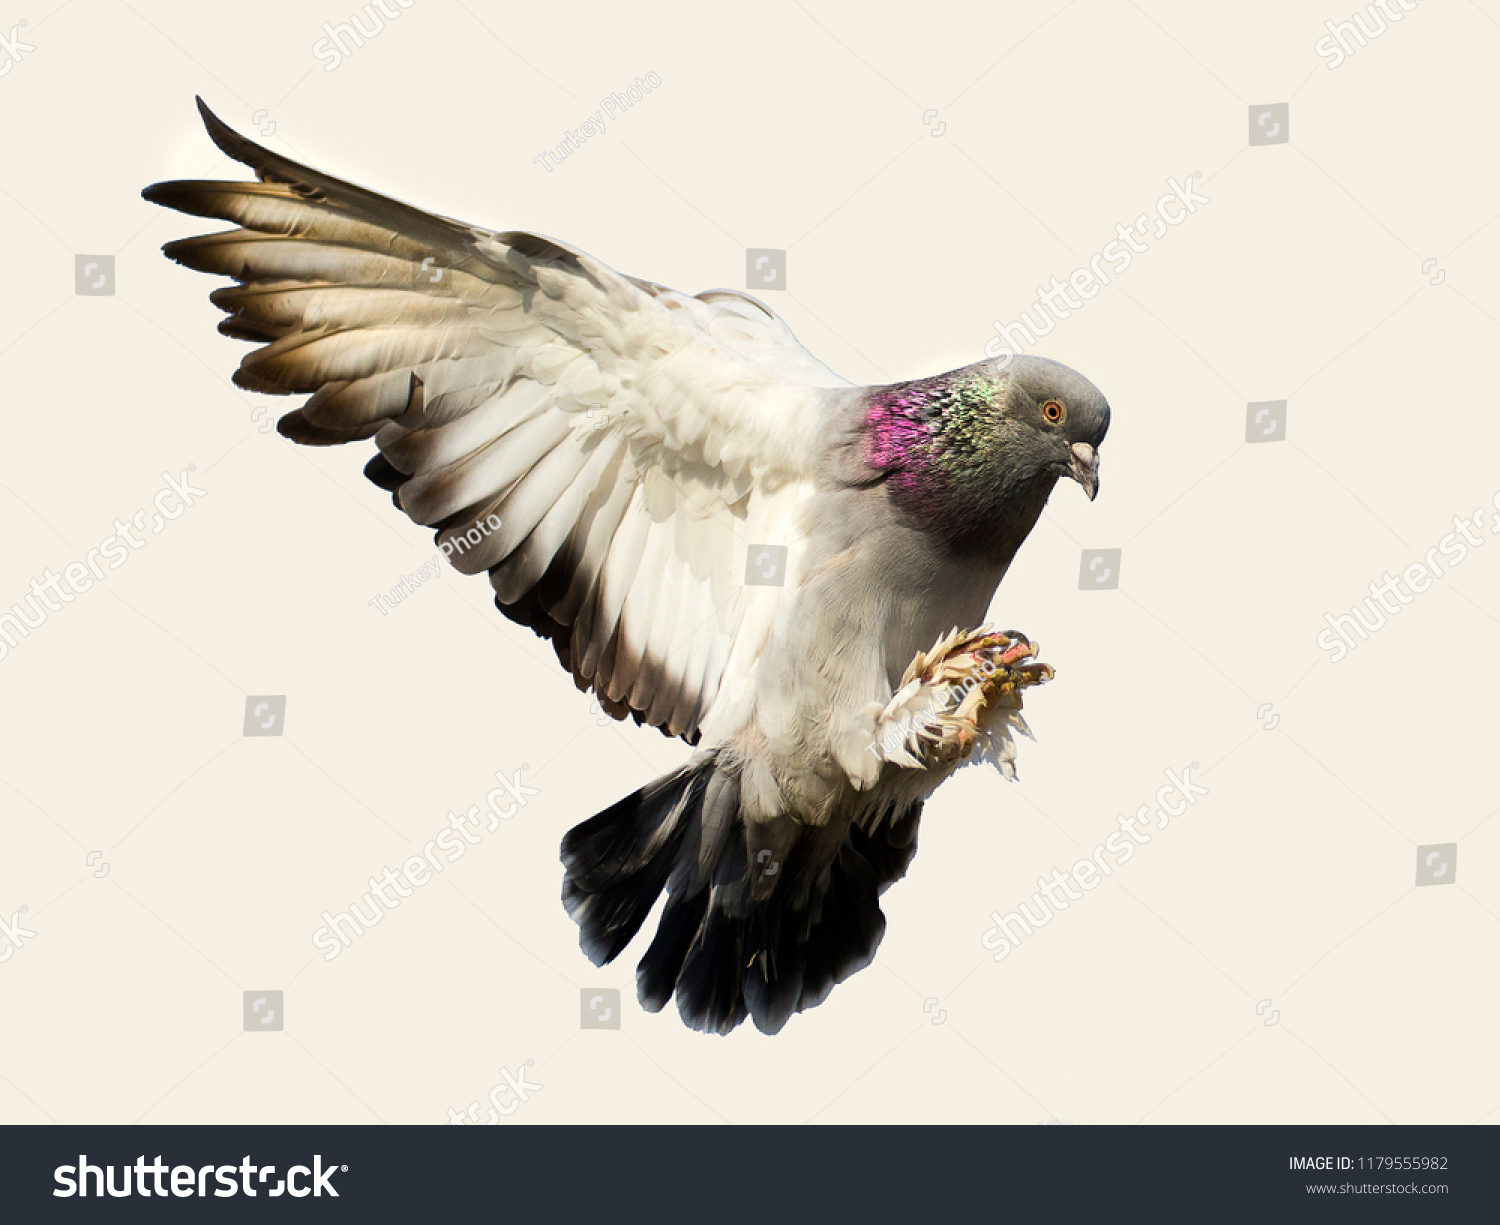 stock-photo-flying-pigeon-bird-in-action